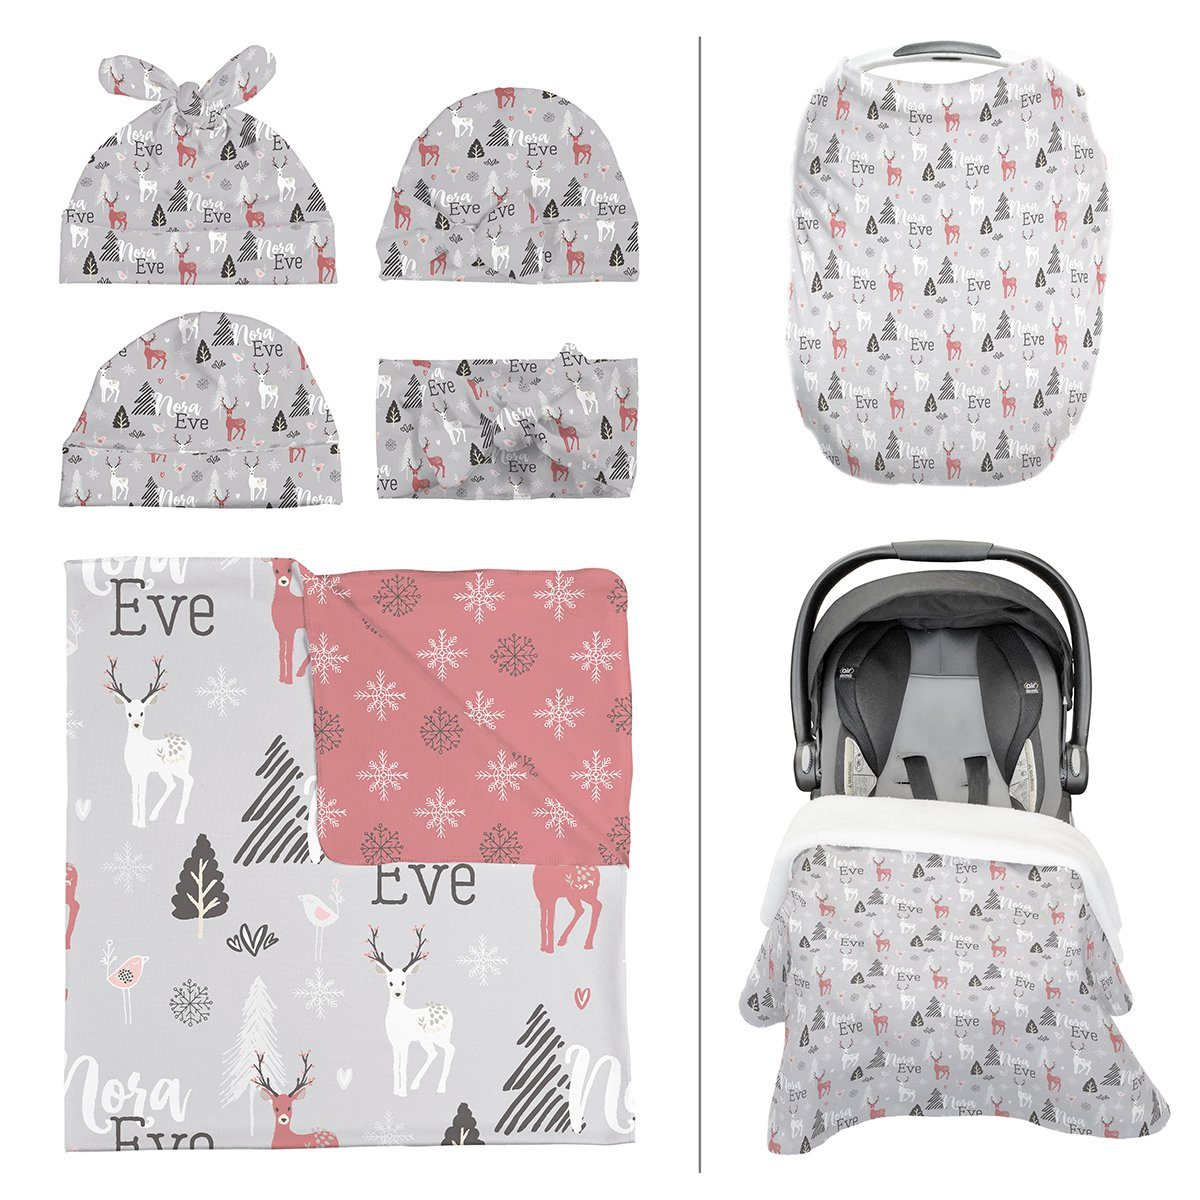 Amina's Winter Wonderland | Take Me Home Bundle